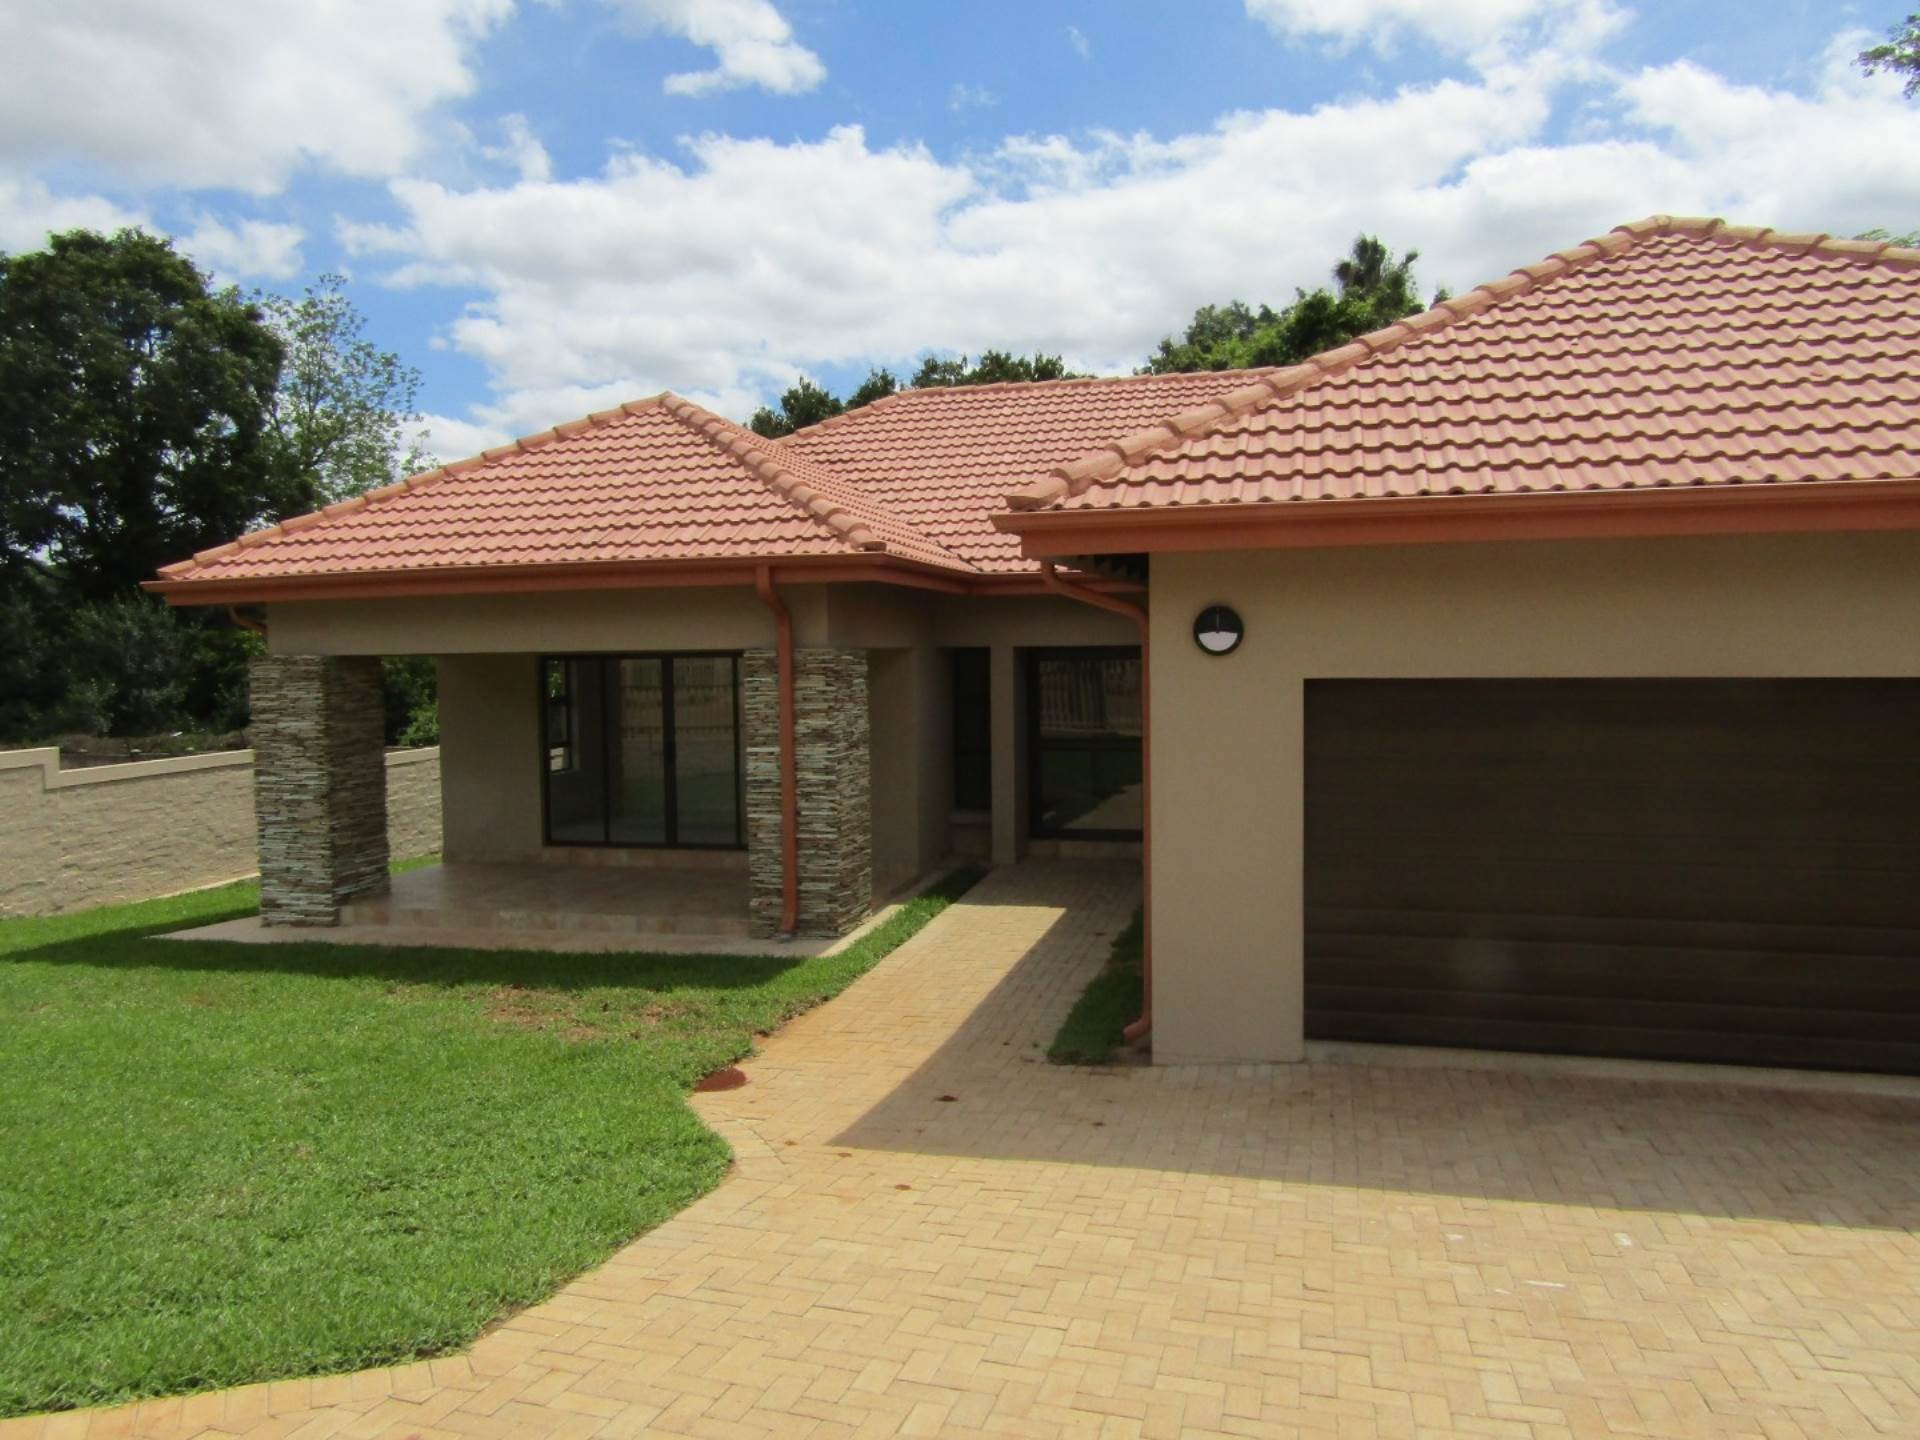 3 Bedroom House for Sale in Aquapark